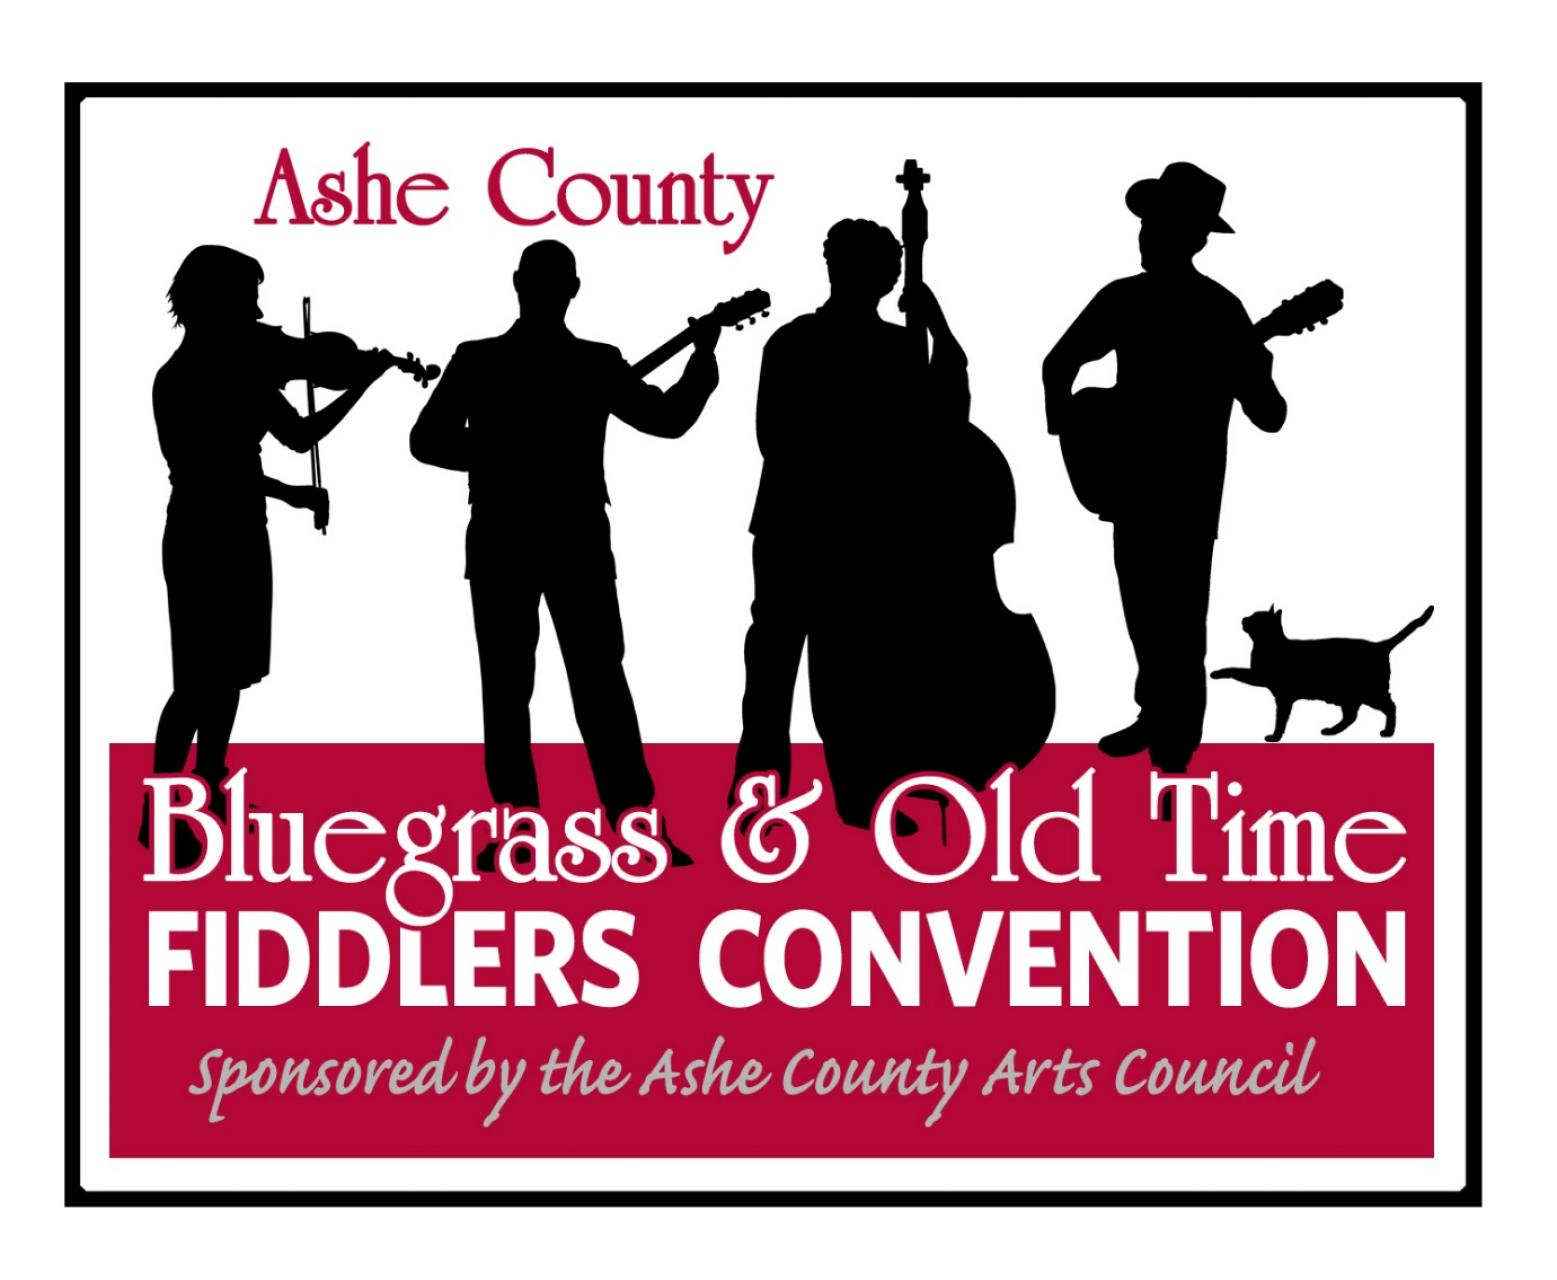 50th Annual Ashe County Bluegrass and Old Time Fiddlers Convention